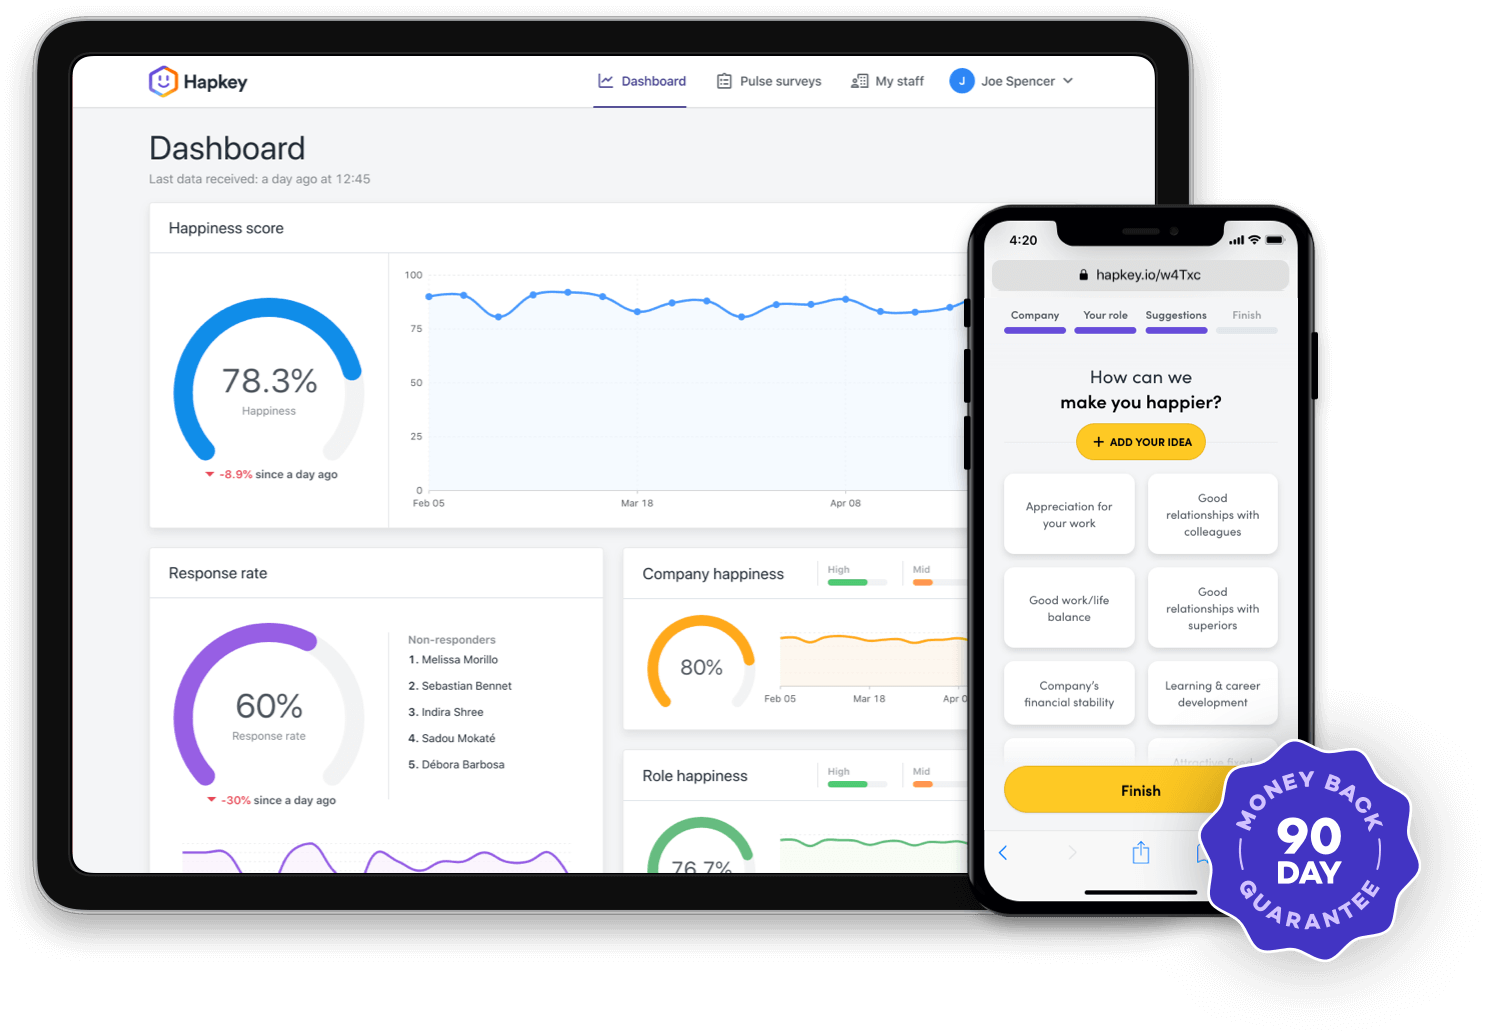 Hapkey mockup showing the dashboard and the survey app